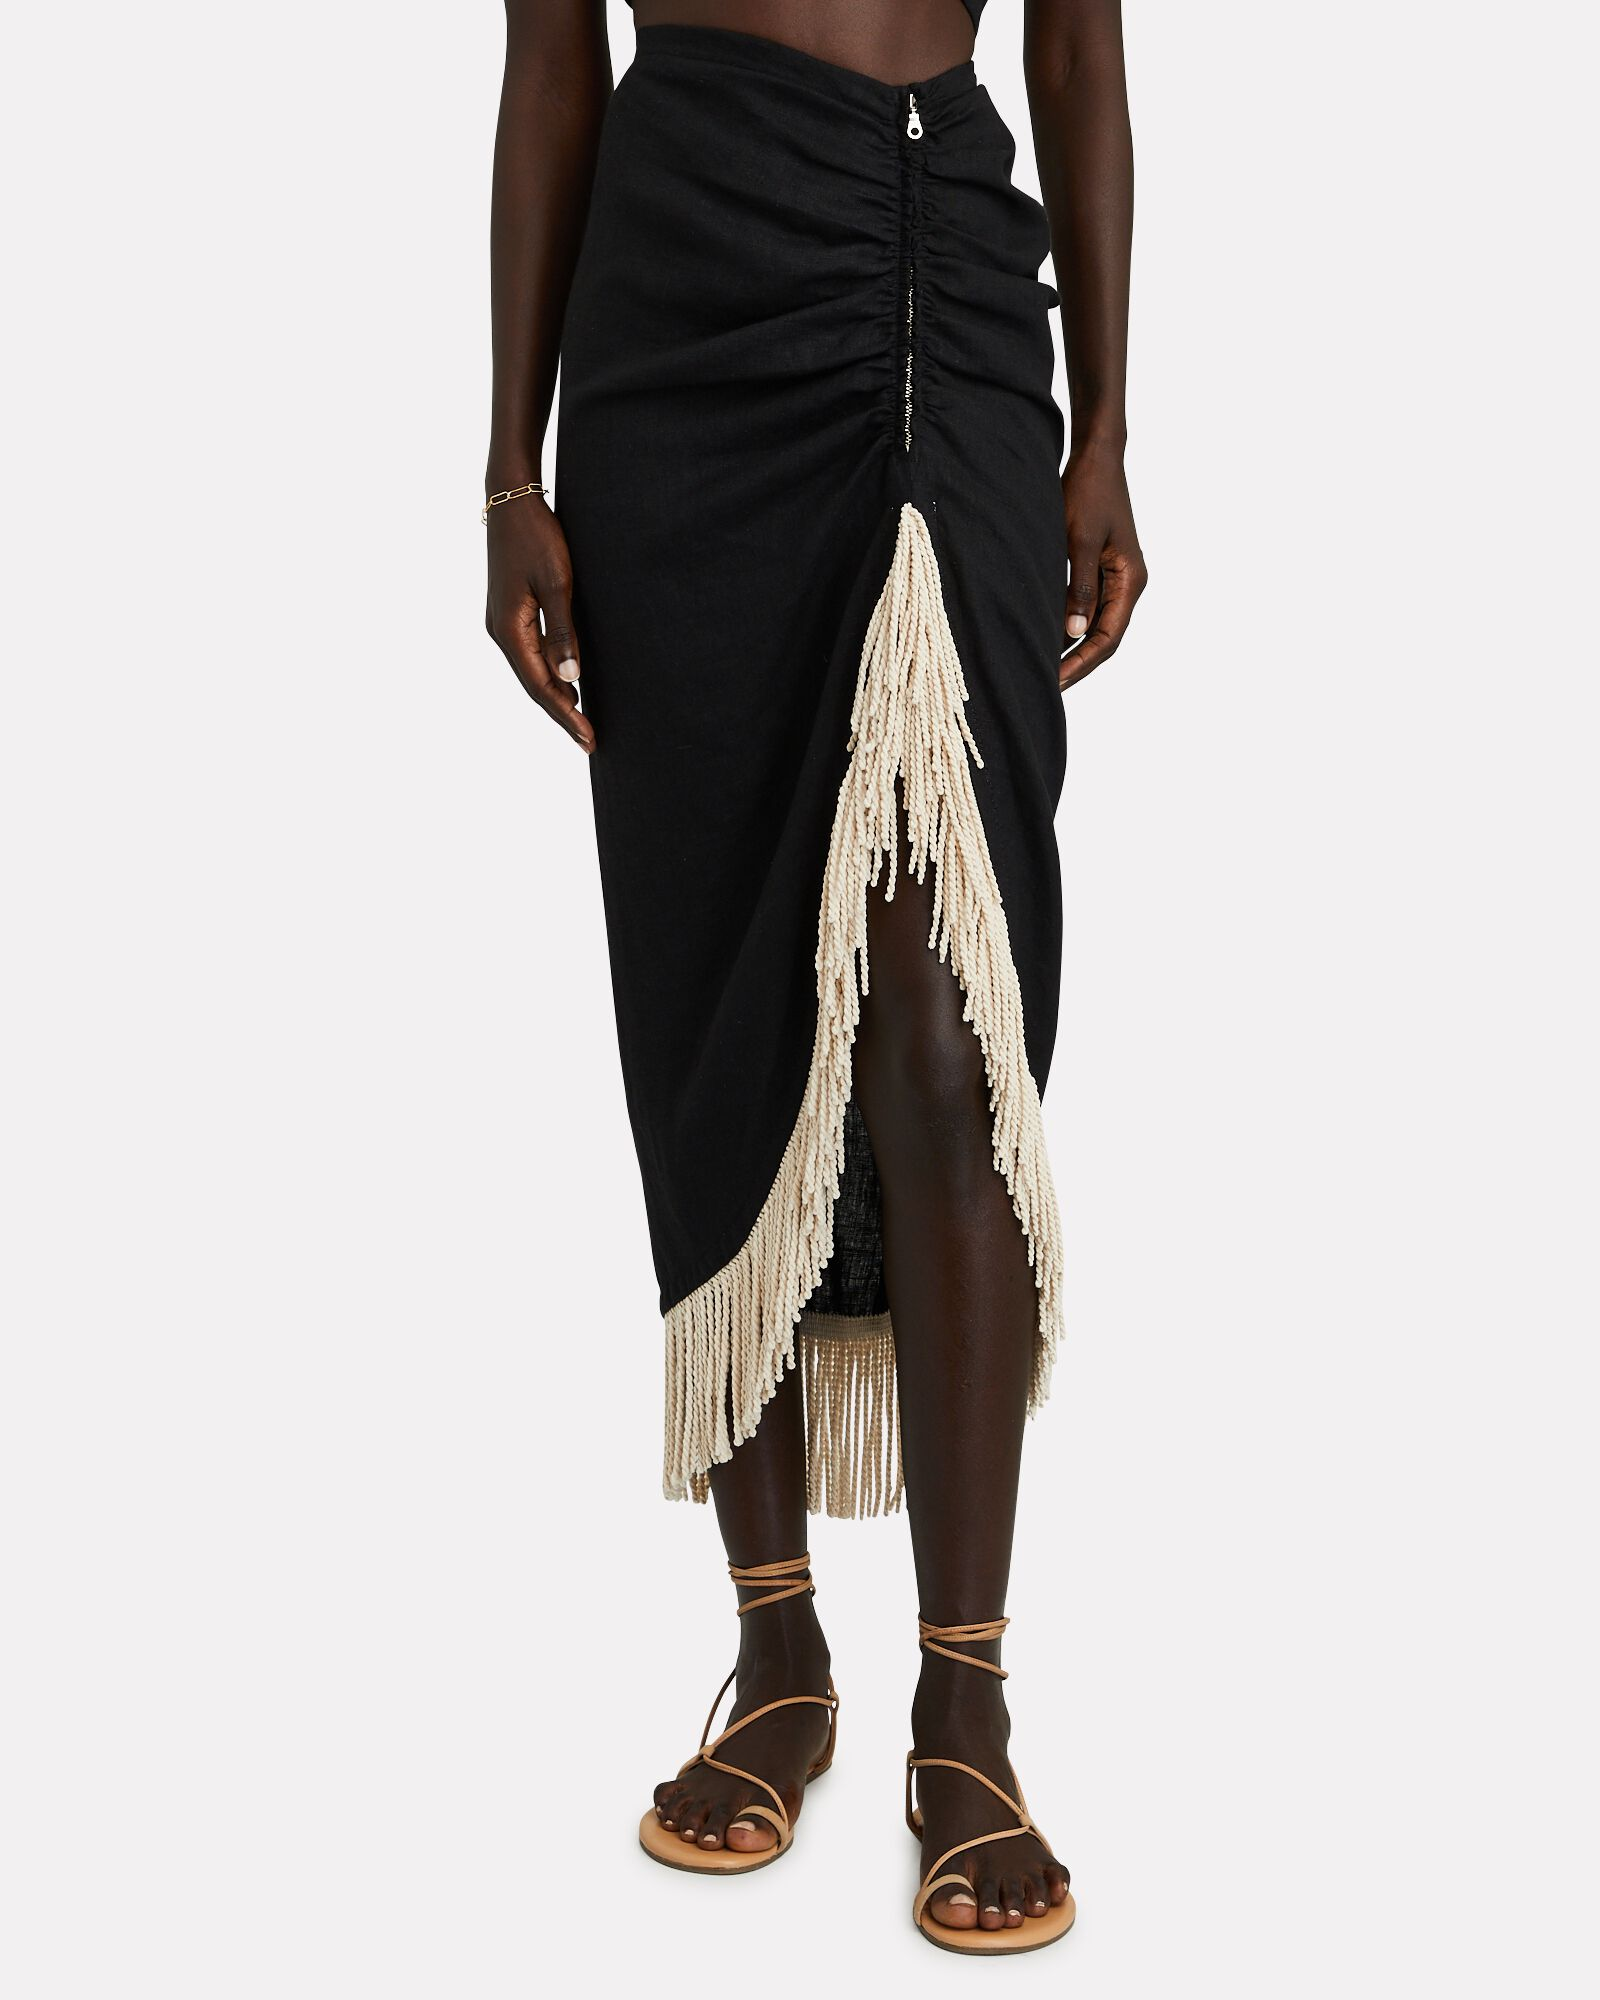 Mallorca Fringed Linen Midi Skirt, BLACK, hi-res